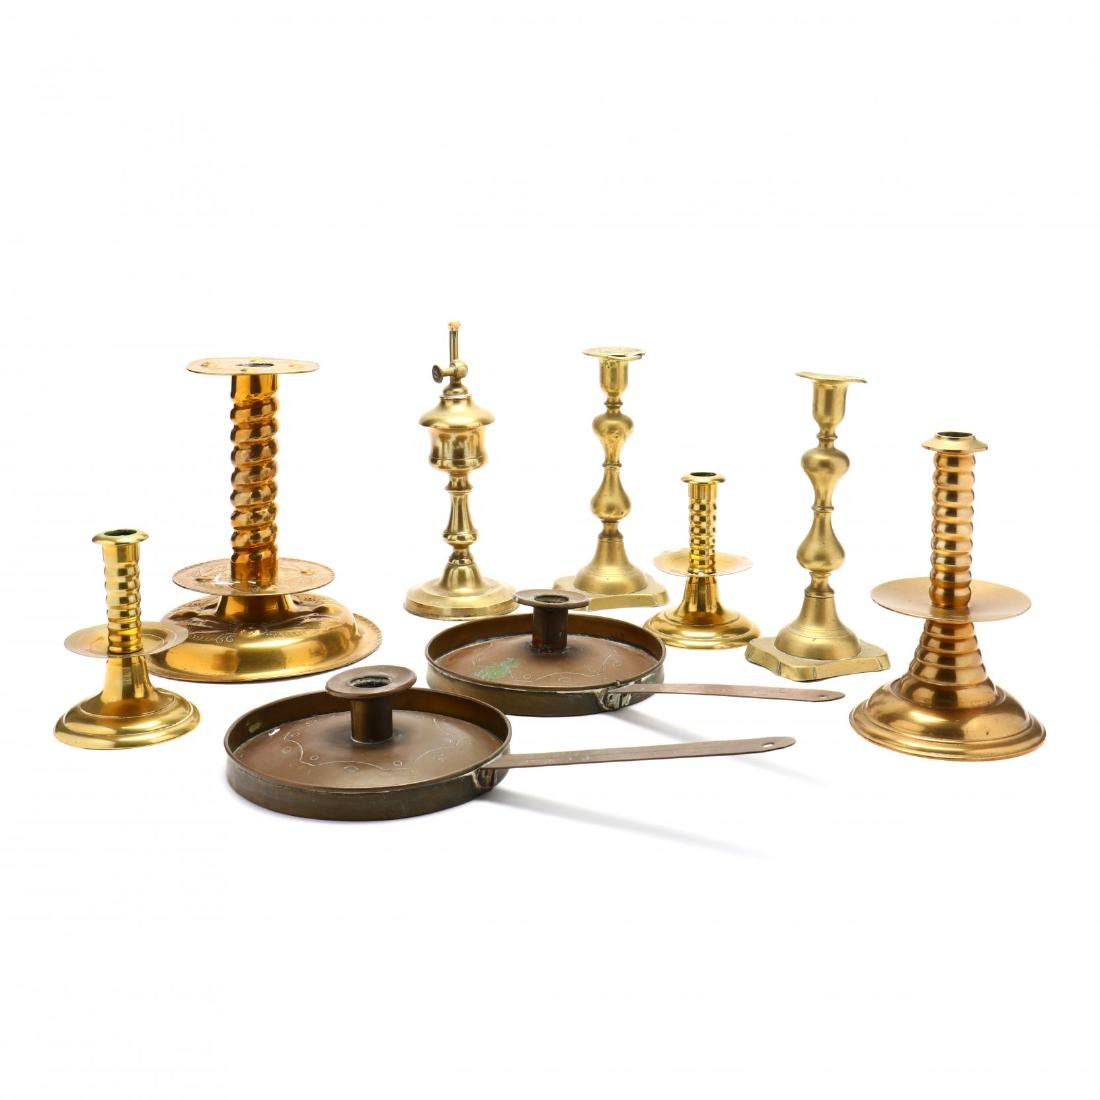 Nine Brass Candlesticks